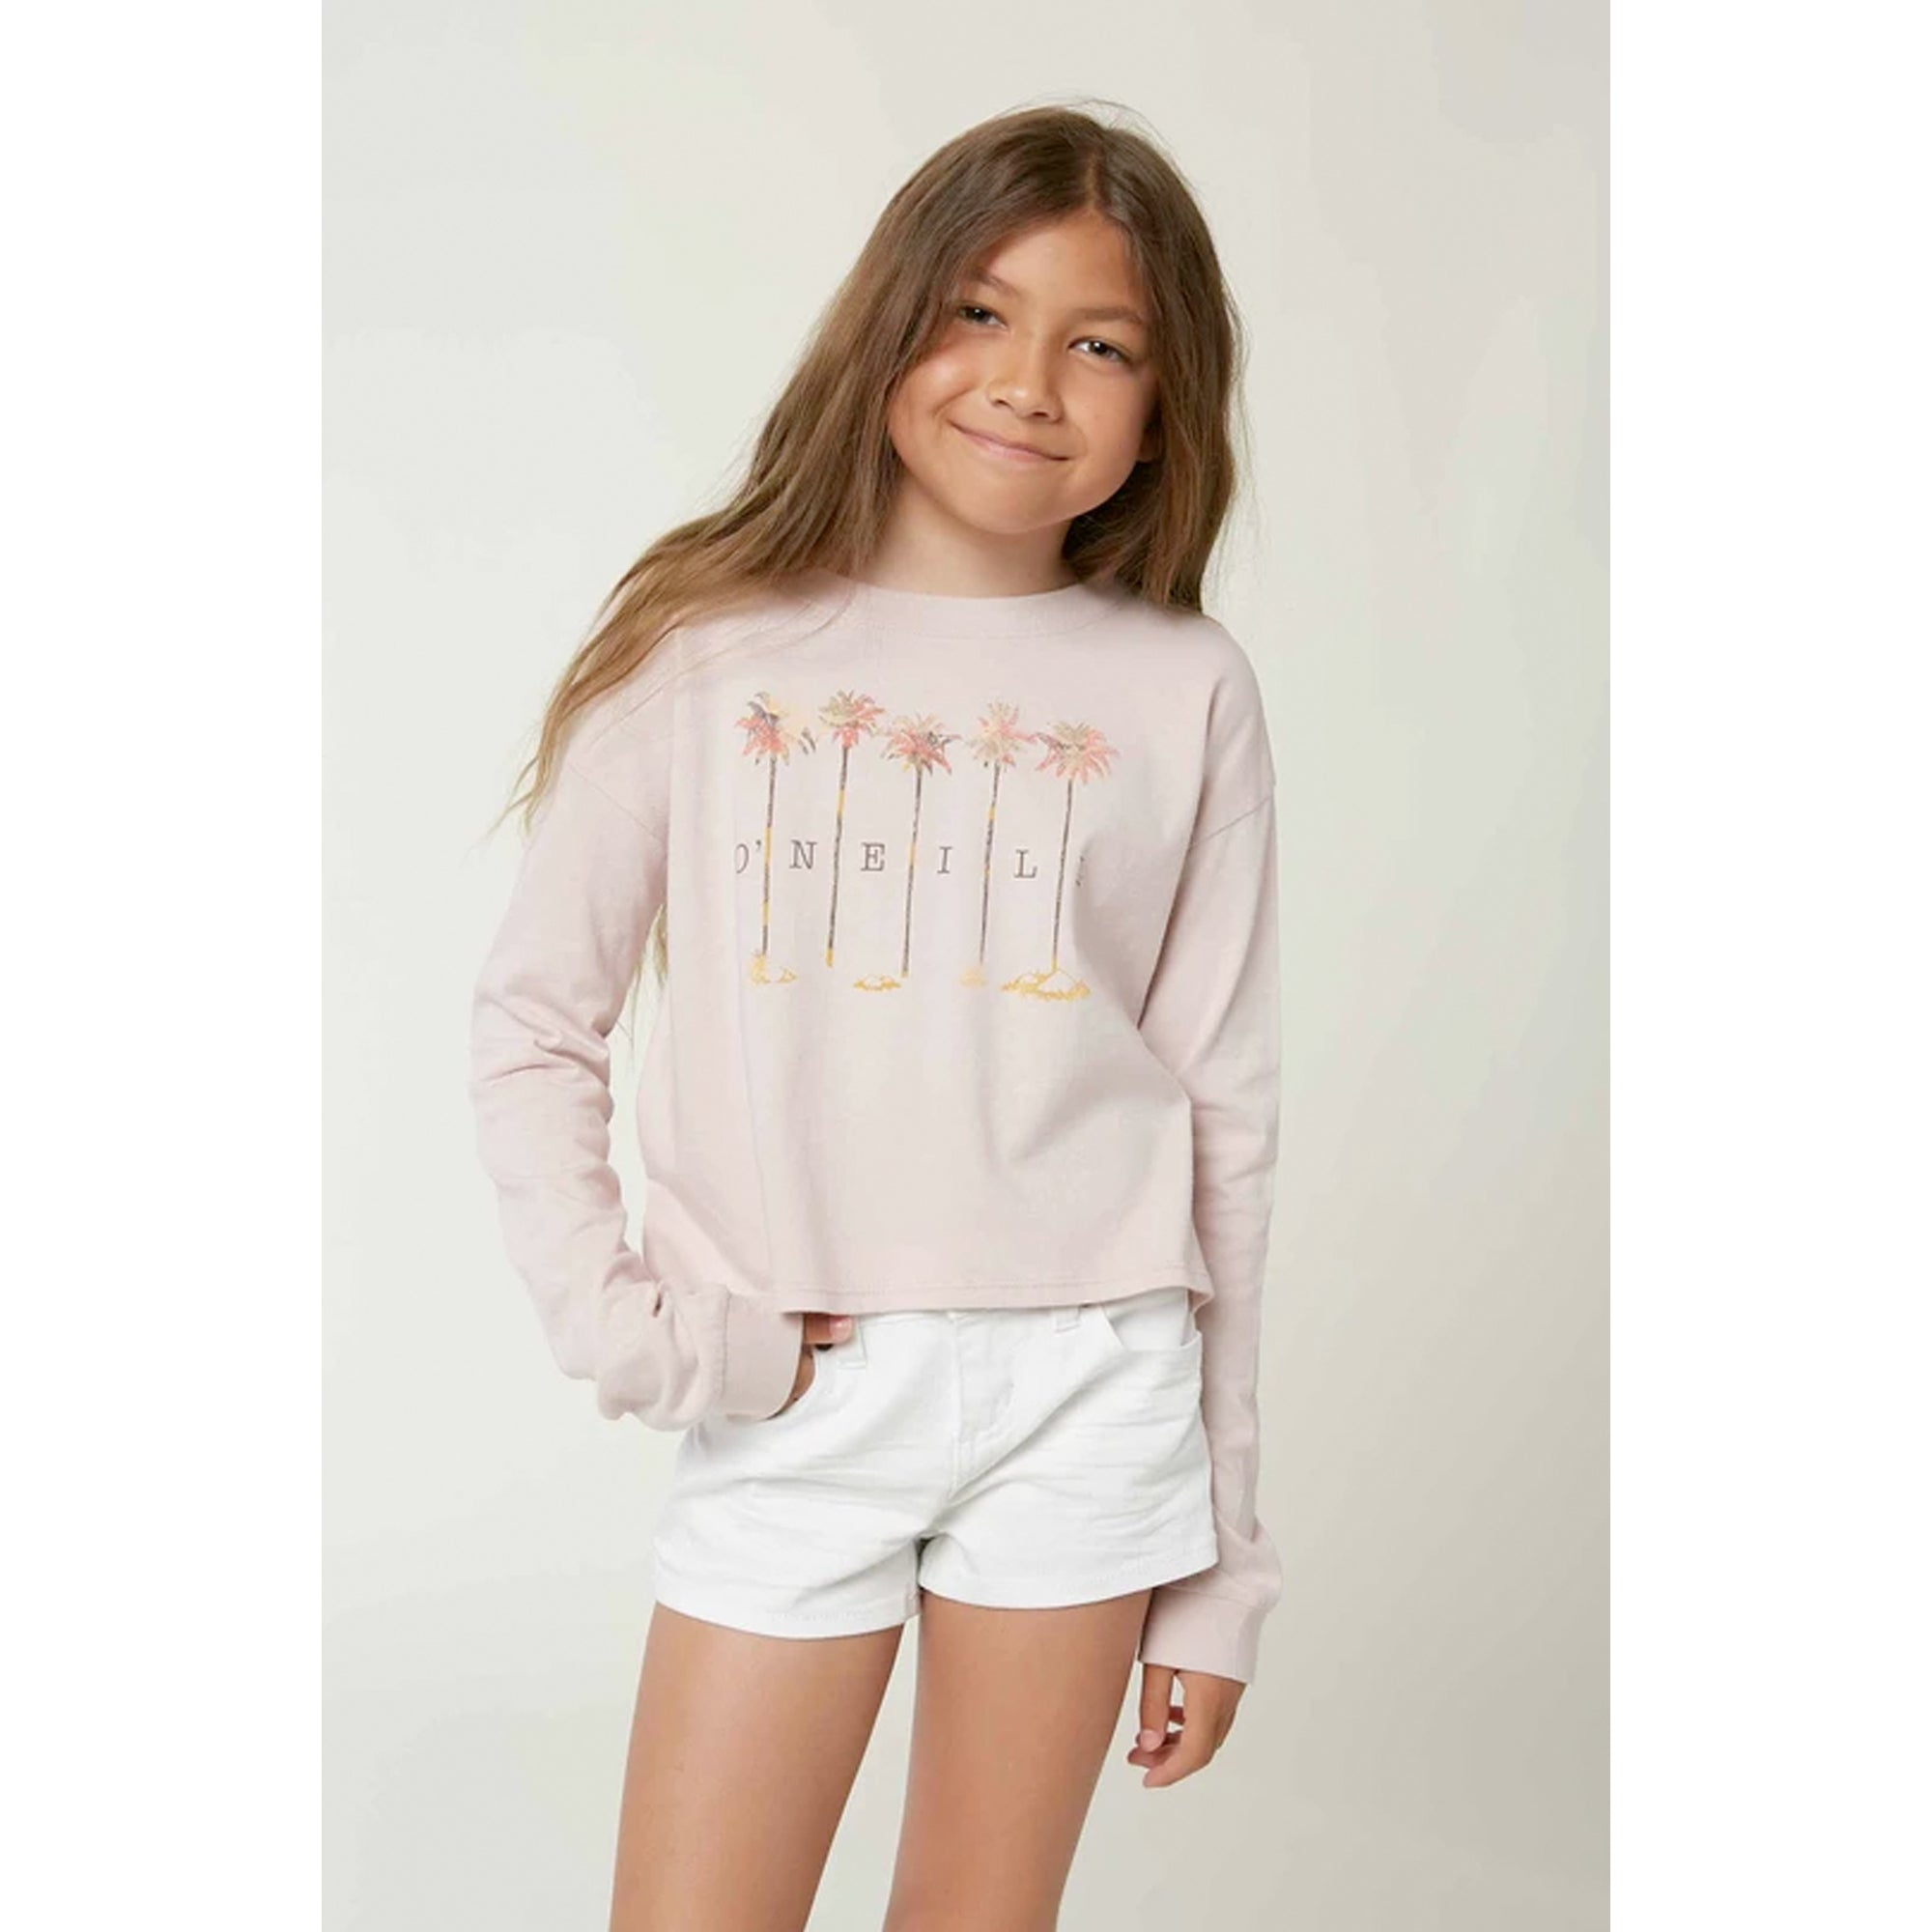 O'Neill Serene Youth Girl's L/S T-Shirt